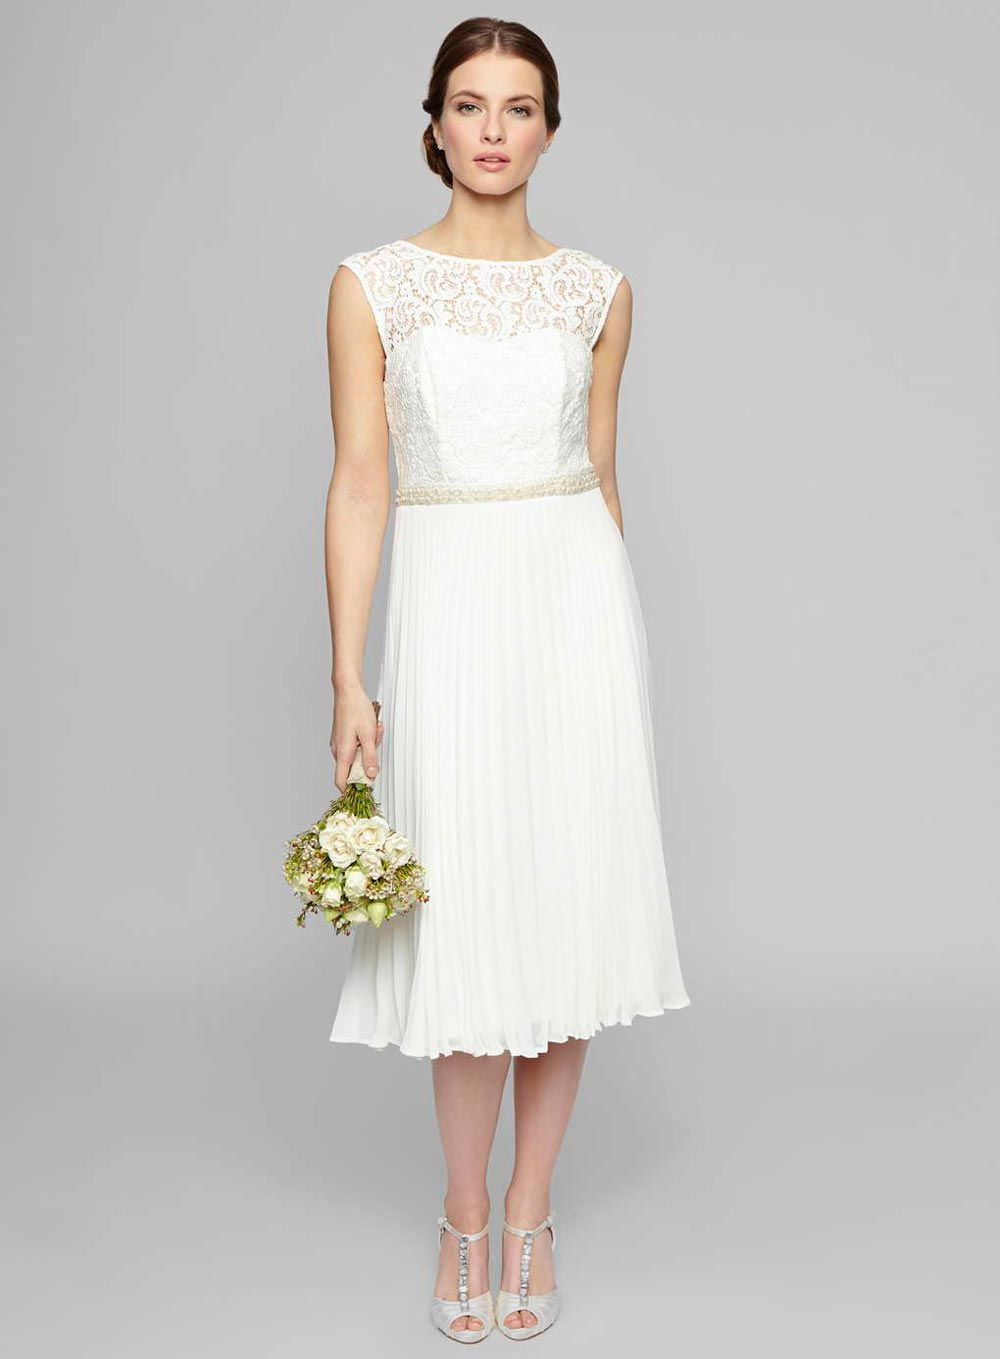 Pleated wedding dress  The Best Wedding Dresses Under   Bhs Wedding dress and Wedding